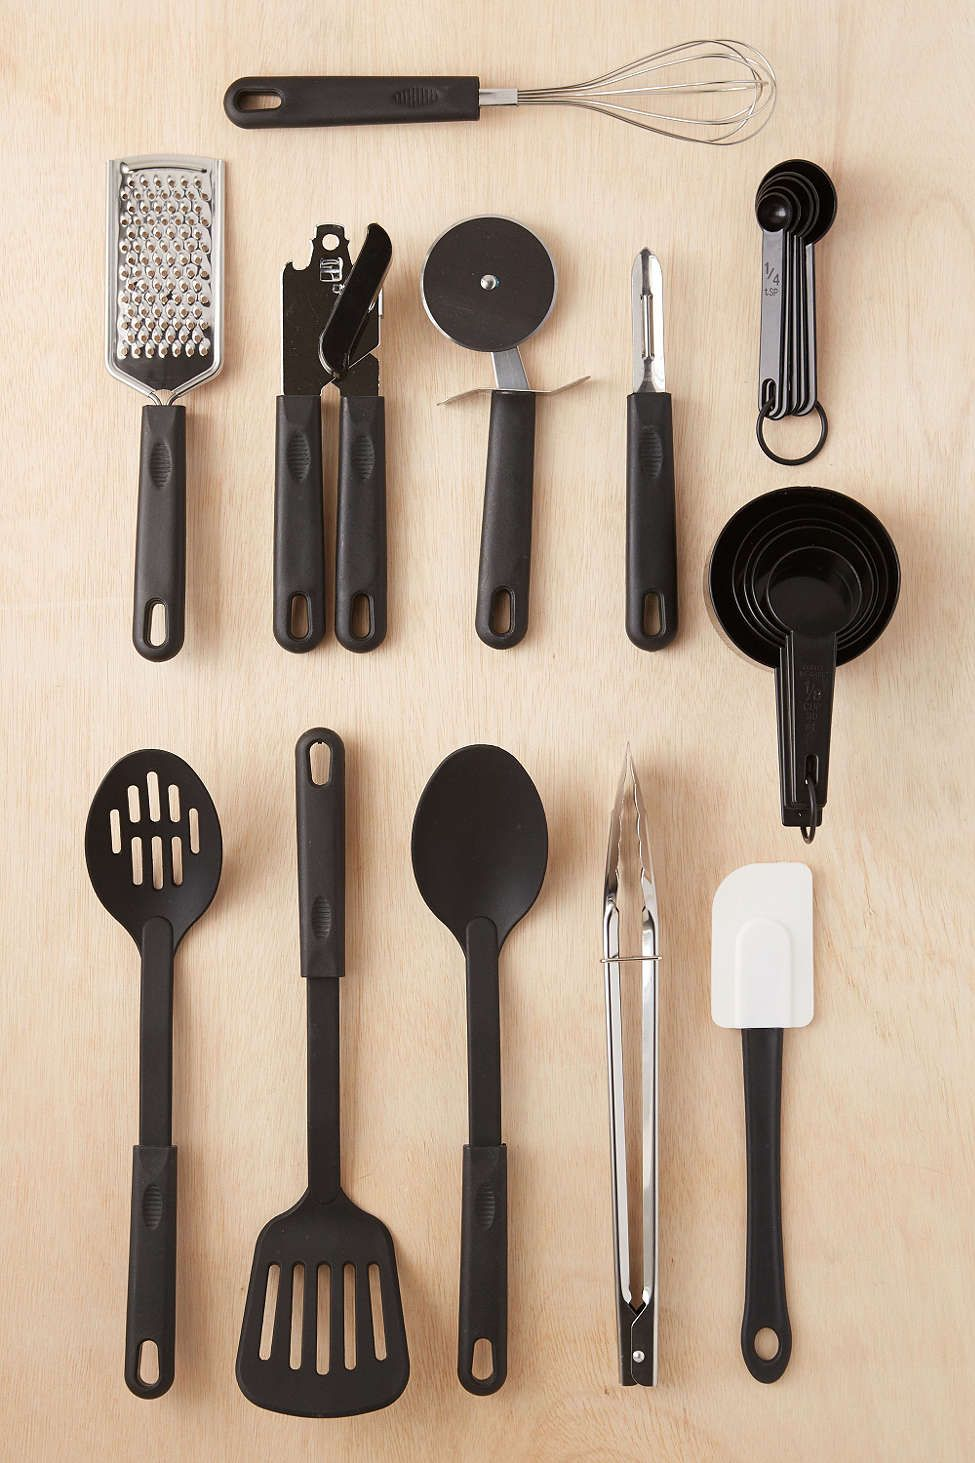 total kitchen 20 piece utensil set kitchen pinterest maison ustensile cuisine et id es. Black Bedroom Furniture Sets. Home Design Ideas